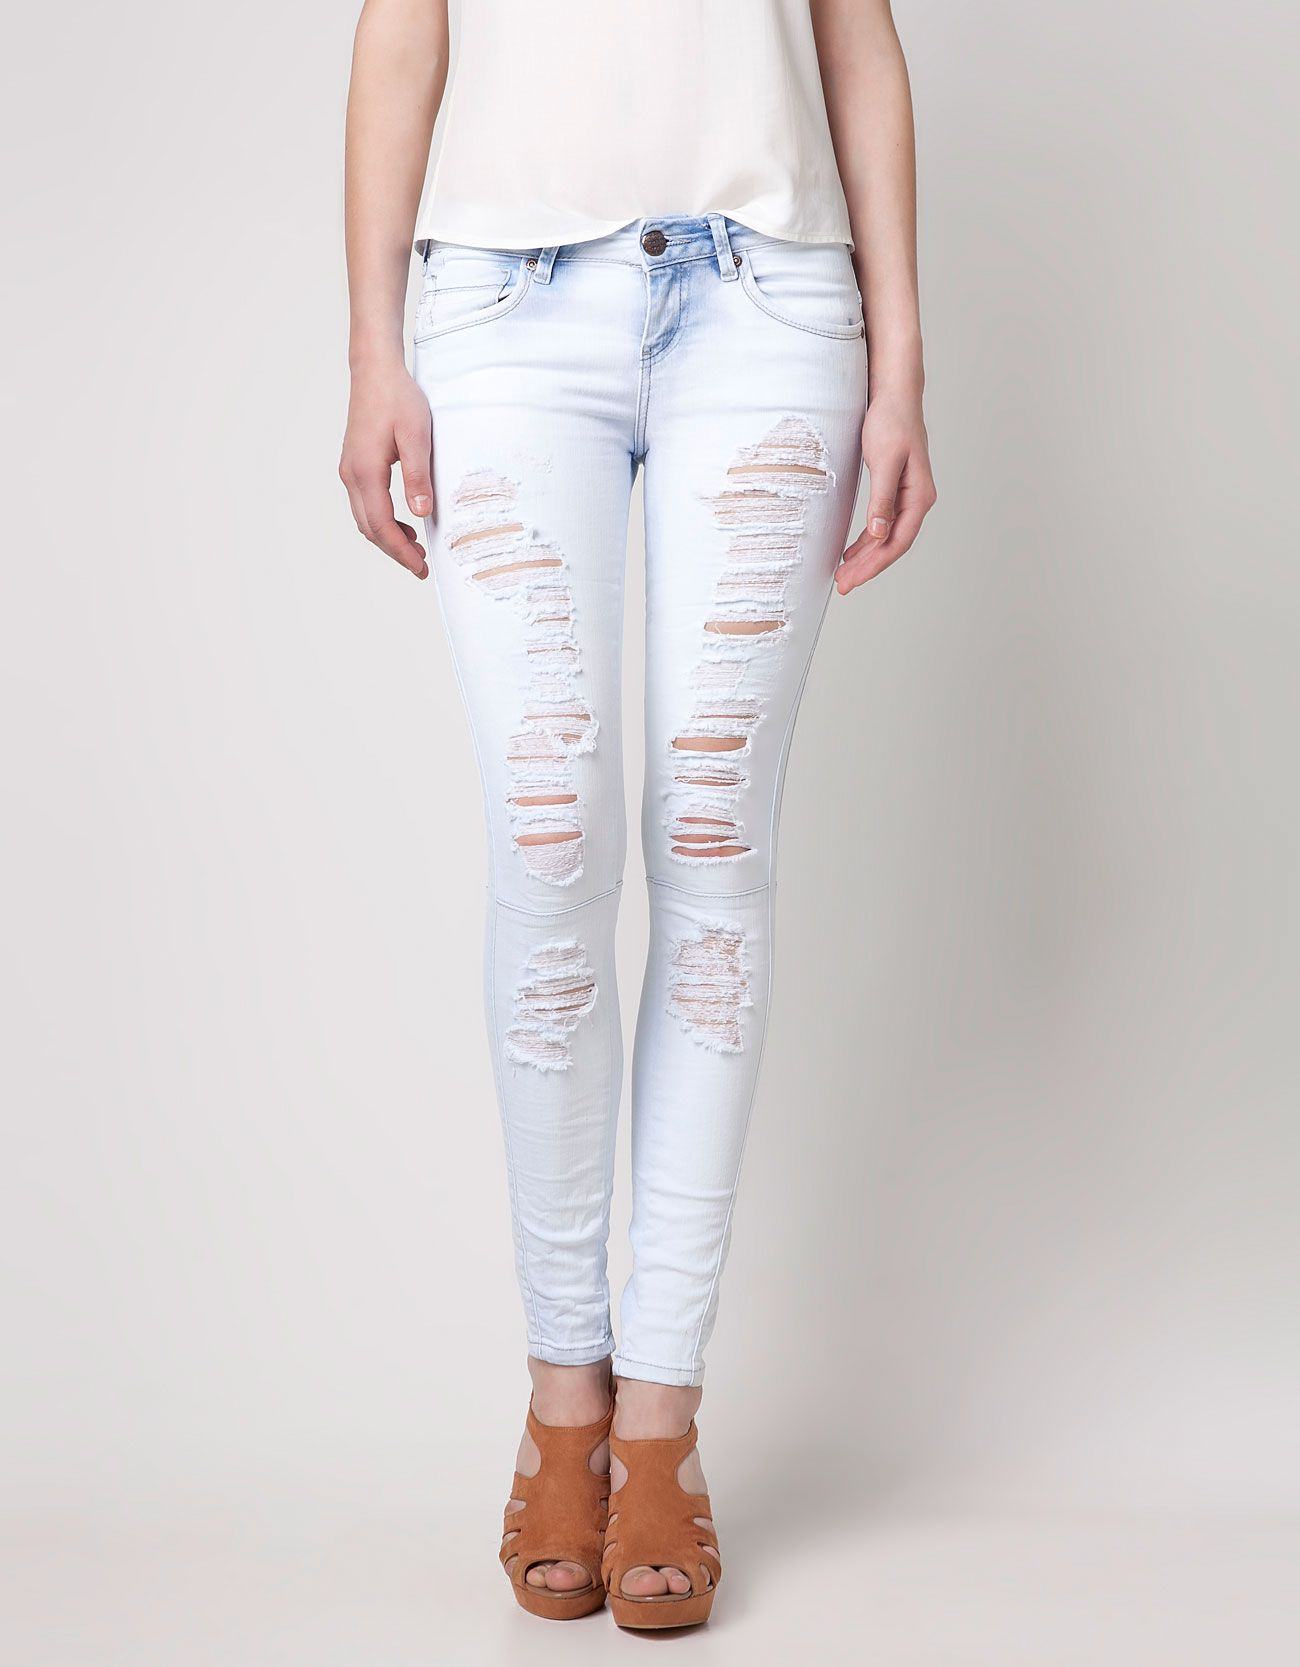 115a5c7f63 Jeans BSK rotos | Clothes | Pinterest | Jeans, Moda and Bershka